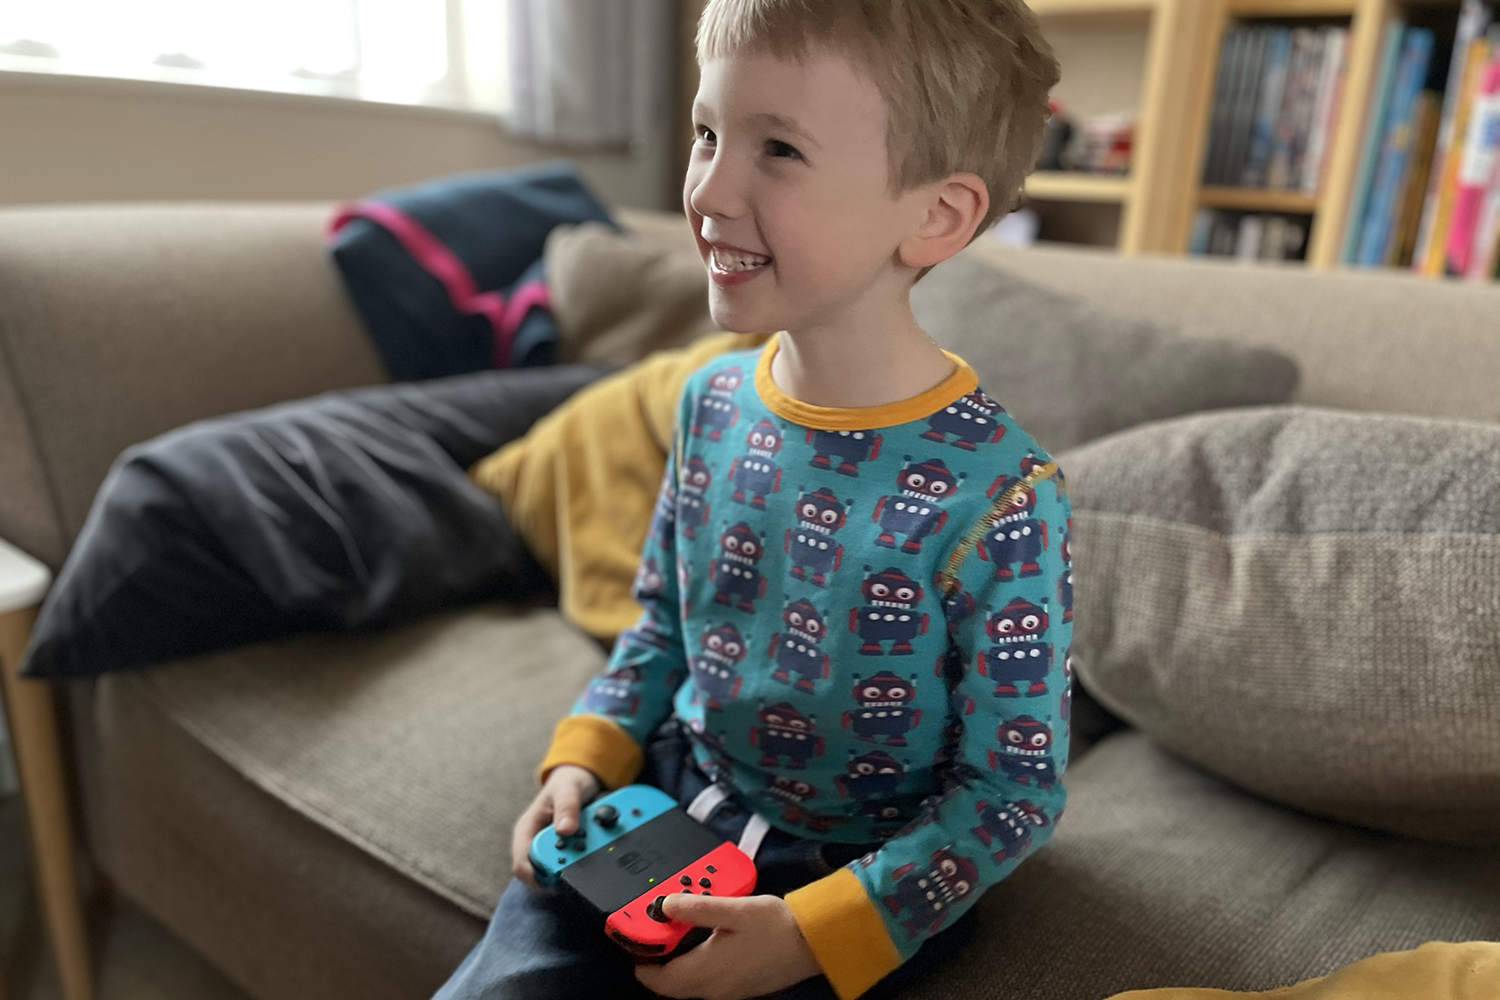 Gabe playing on the Switch